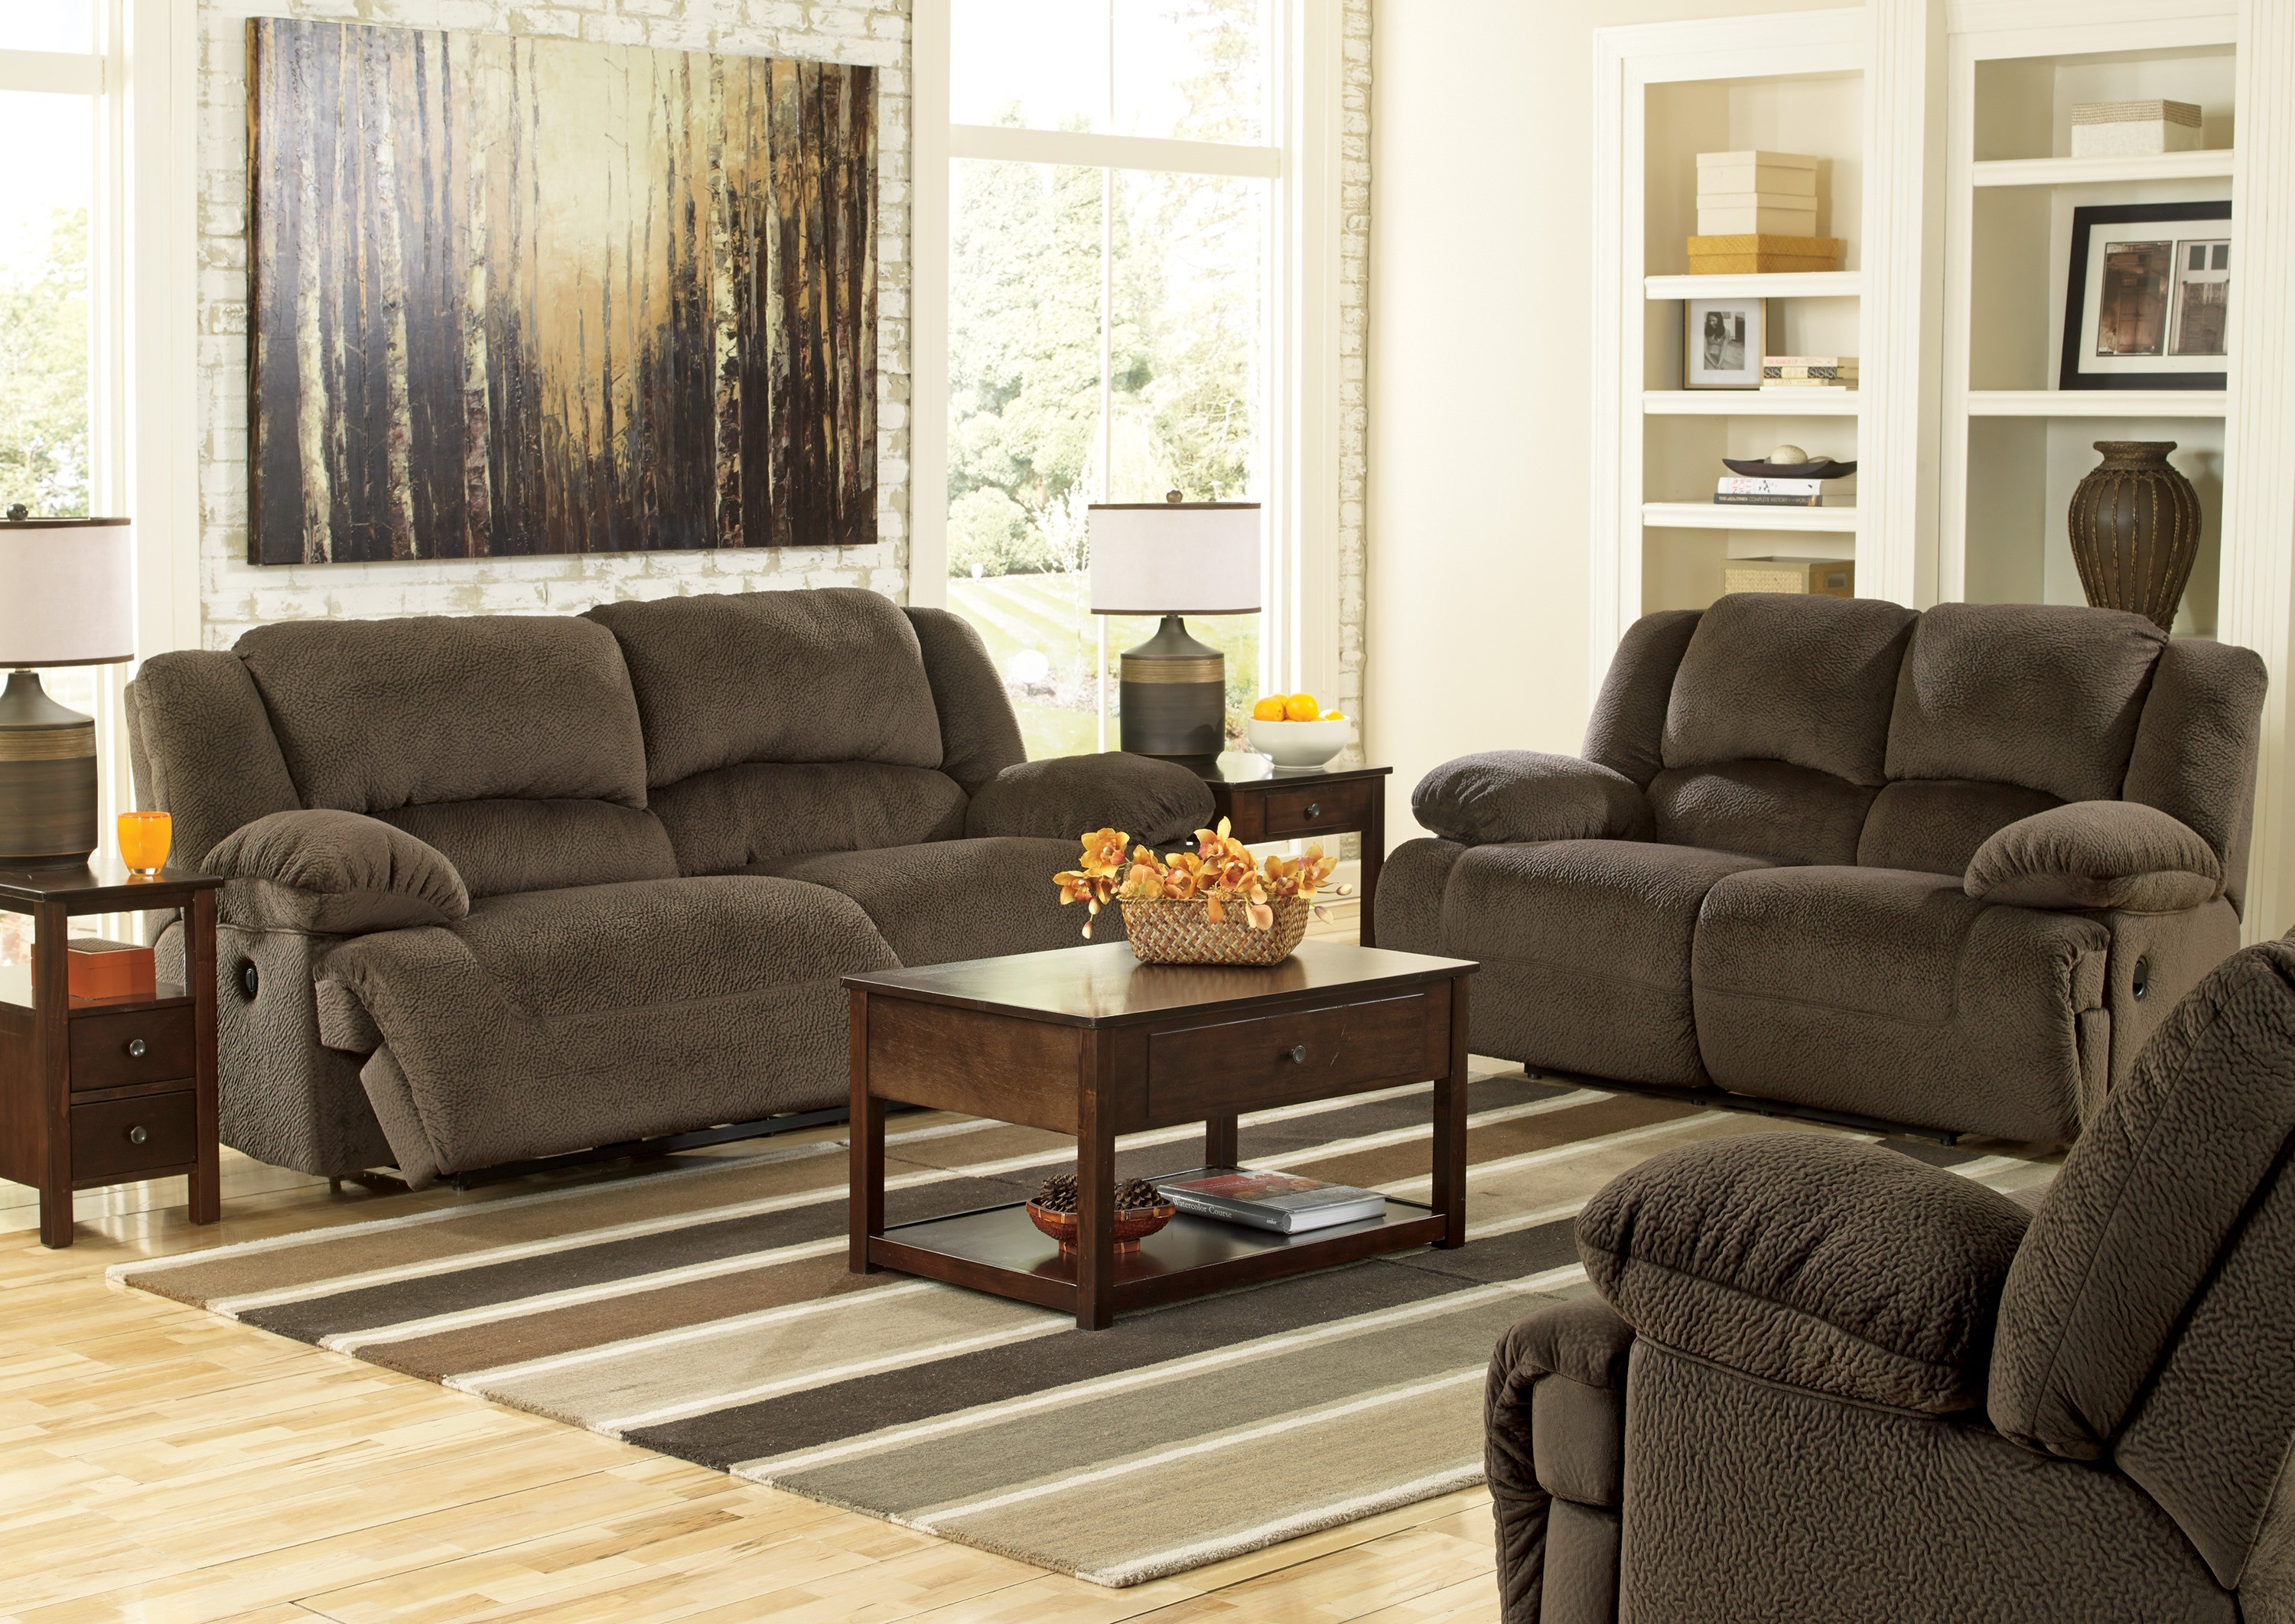 toletta chocolate living room set from ashley 5670181 86 coleman furniture